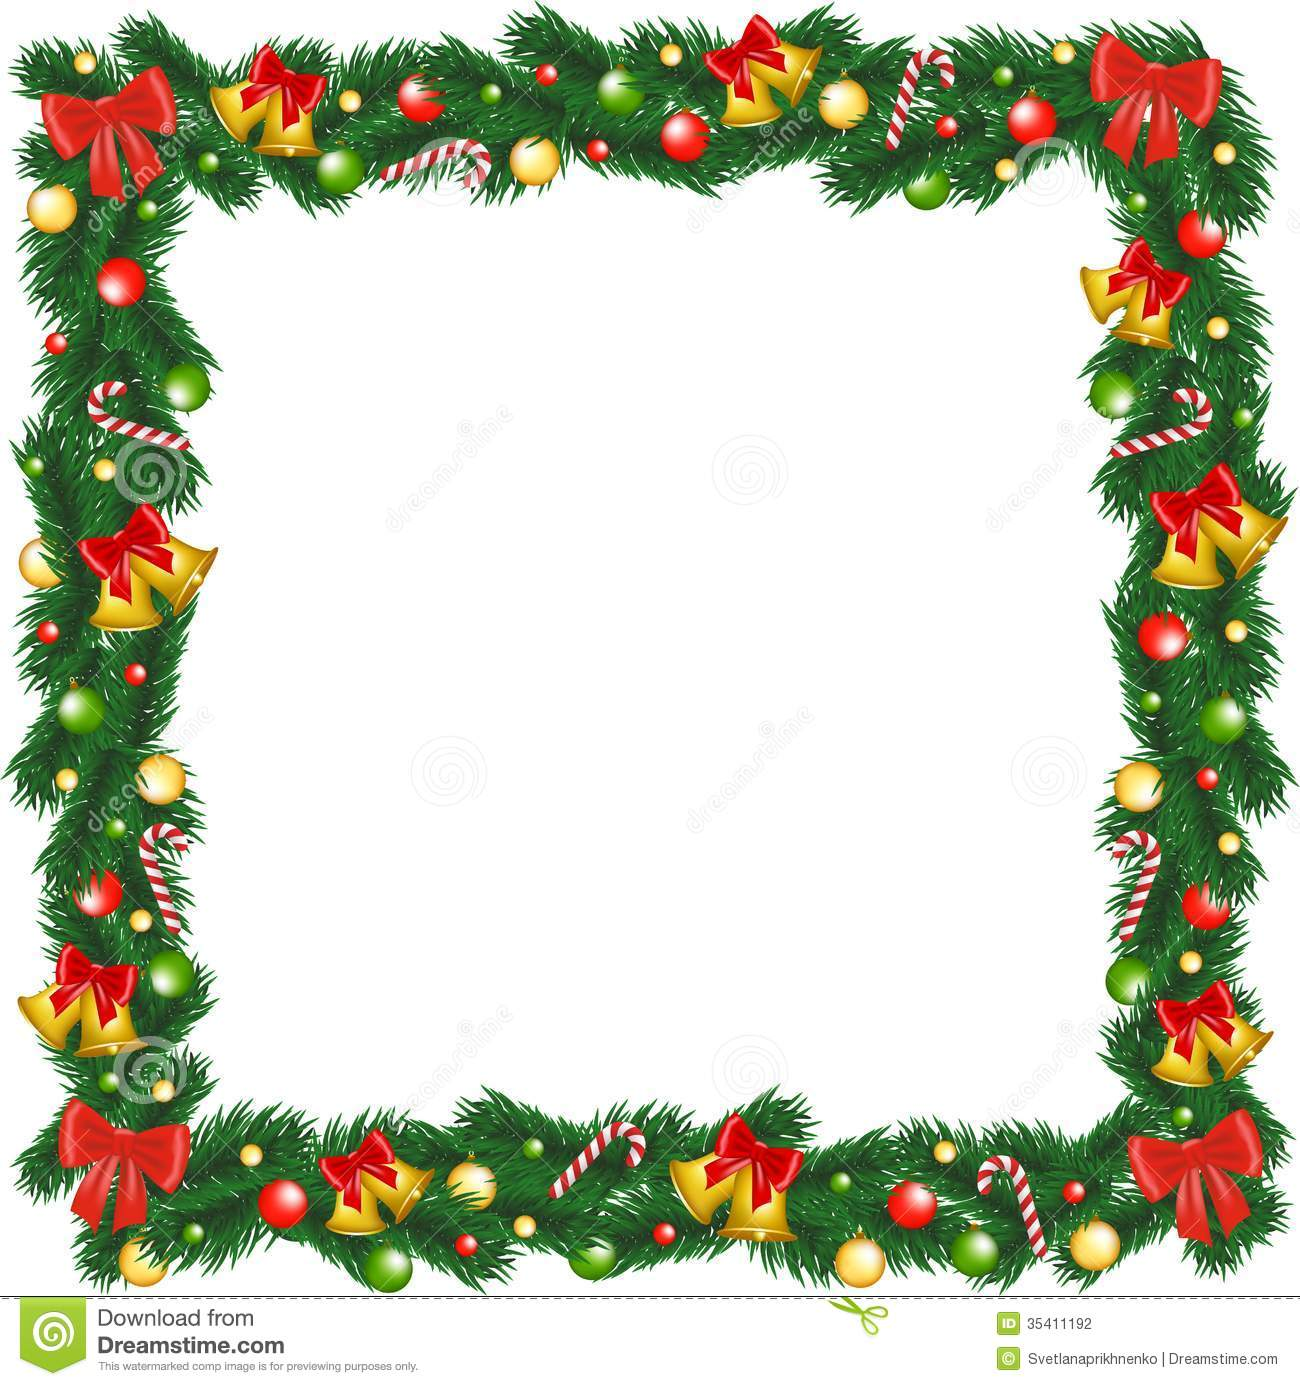 Christmas garland frame with bells, bauble and sugar canes.